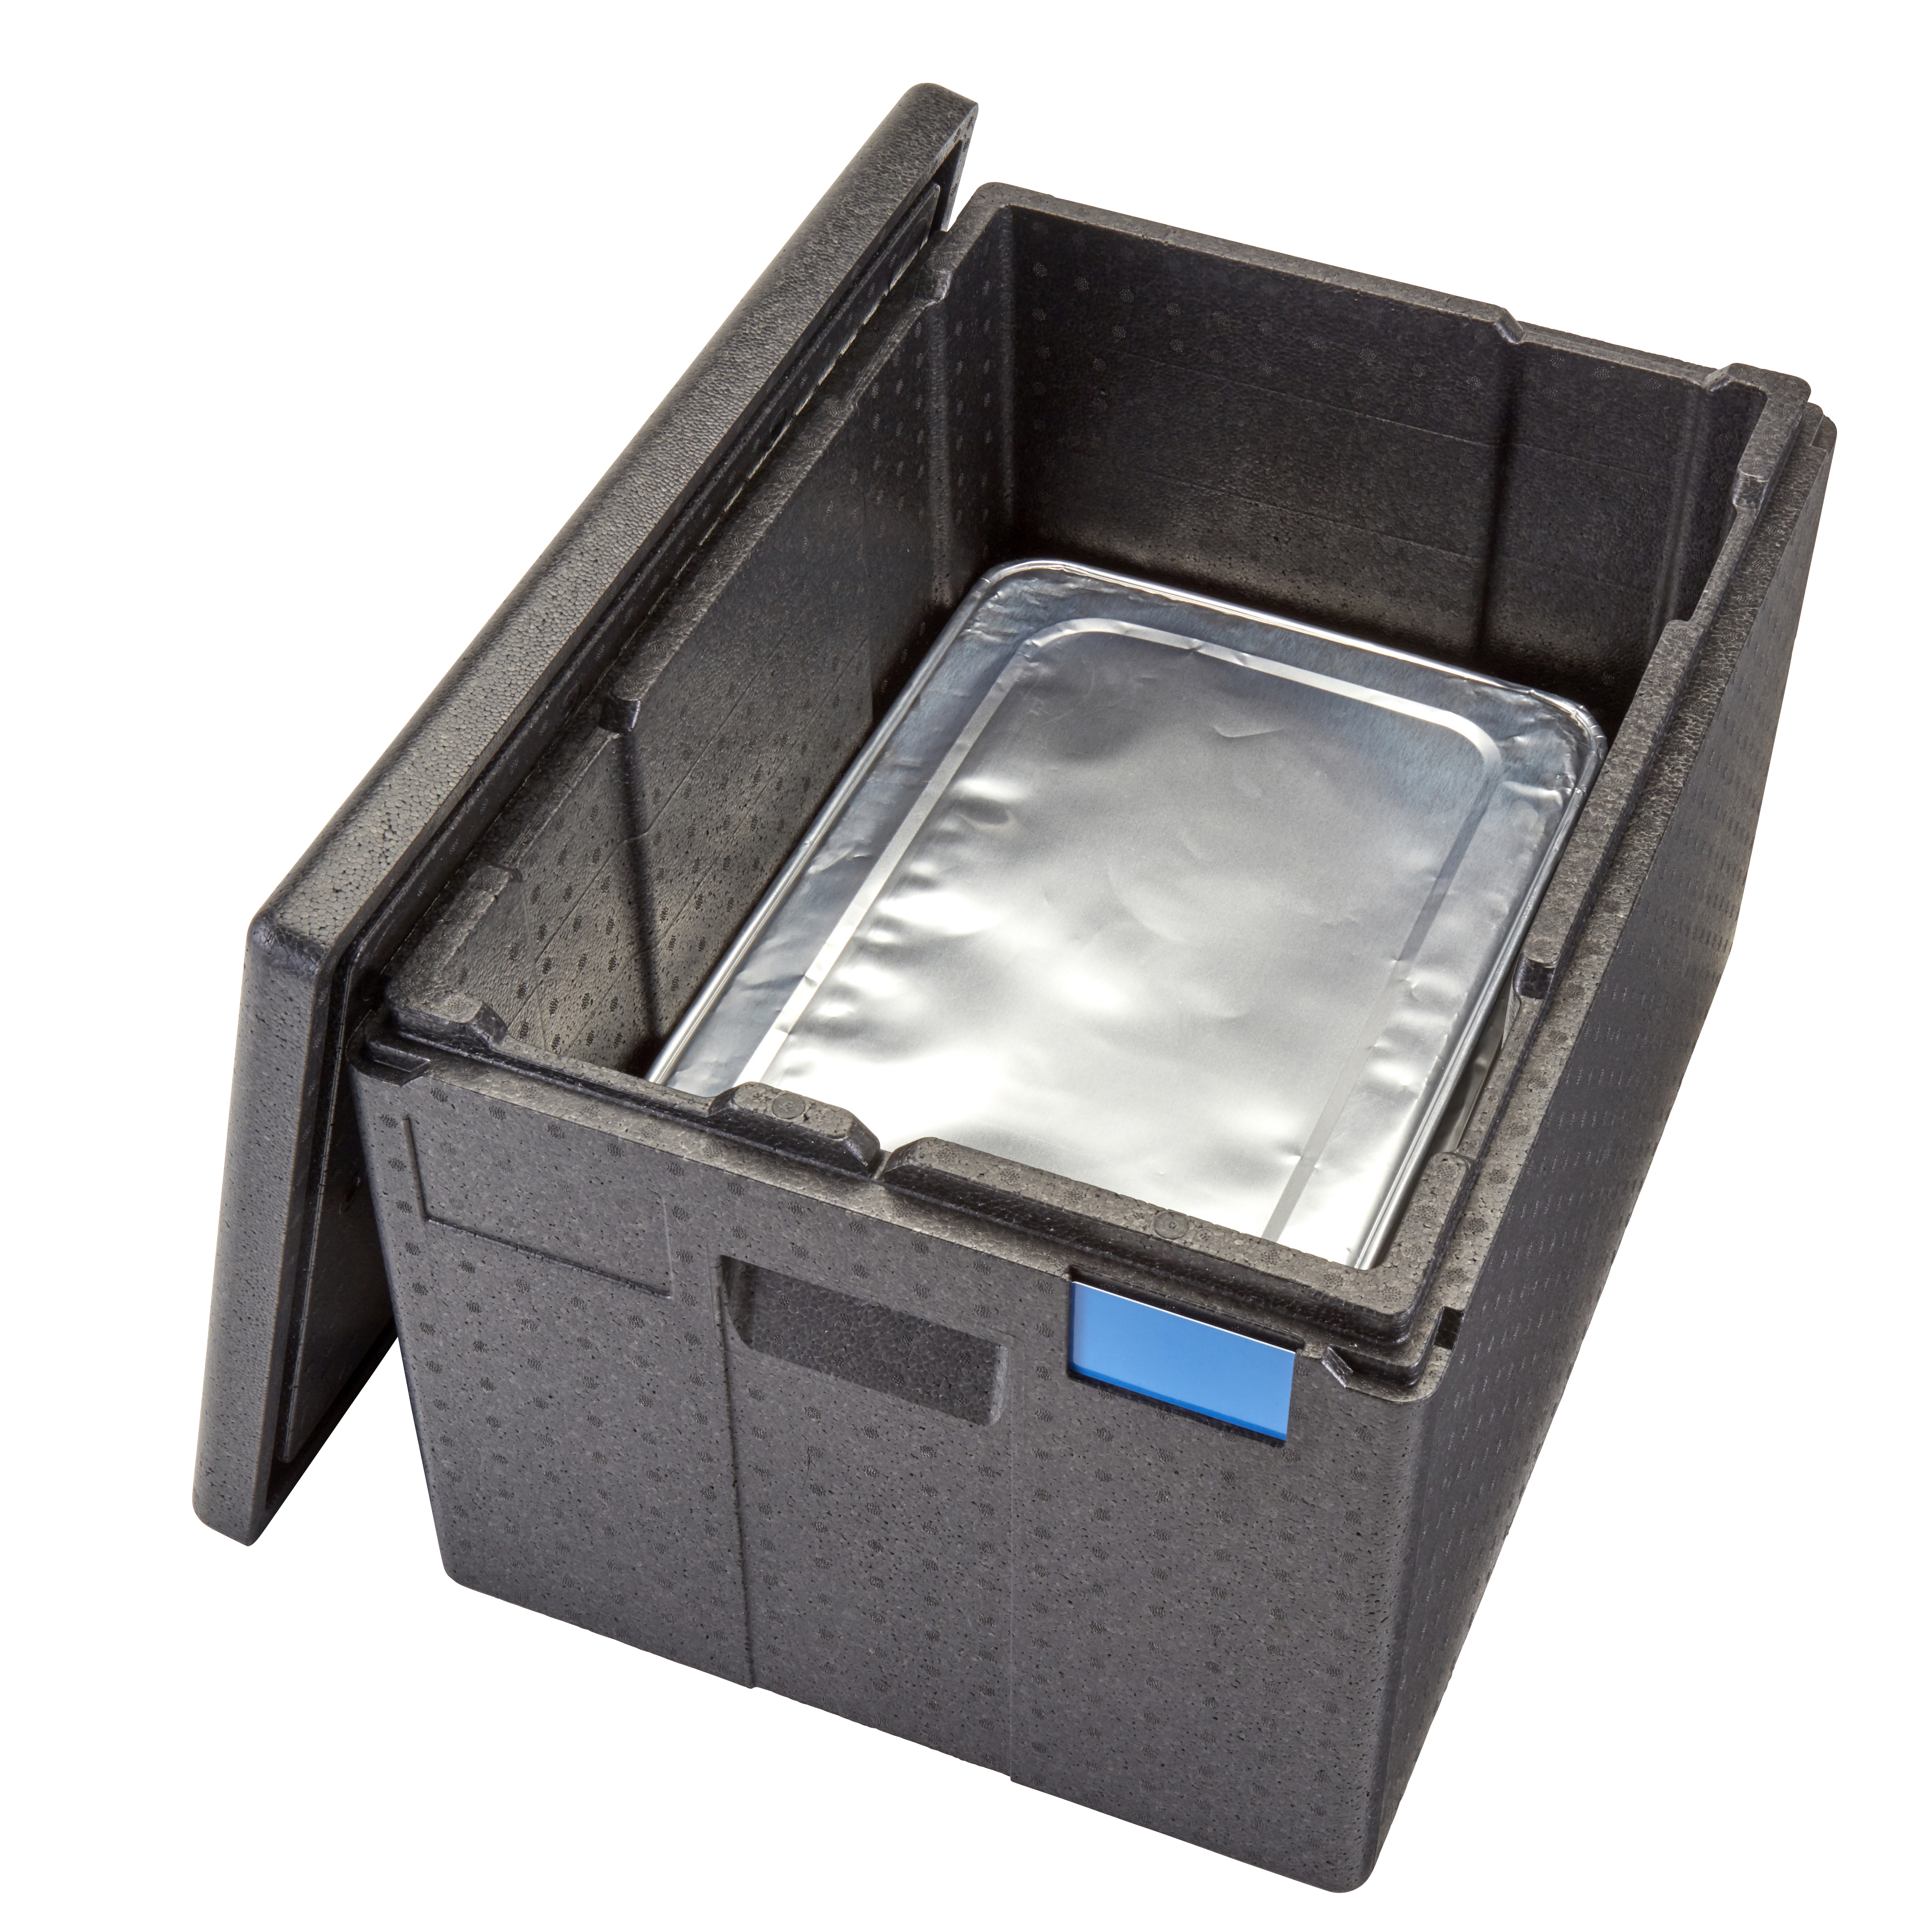 Cambro EPP180XLTSW110 food pan carriers